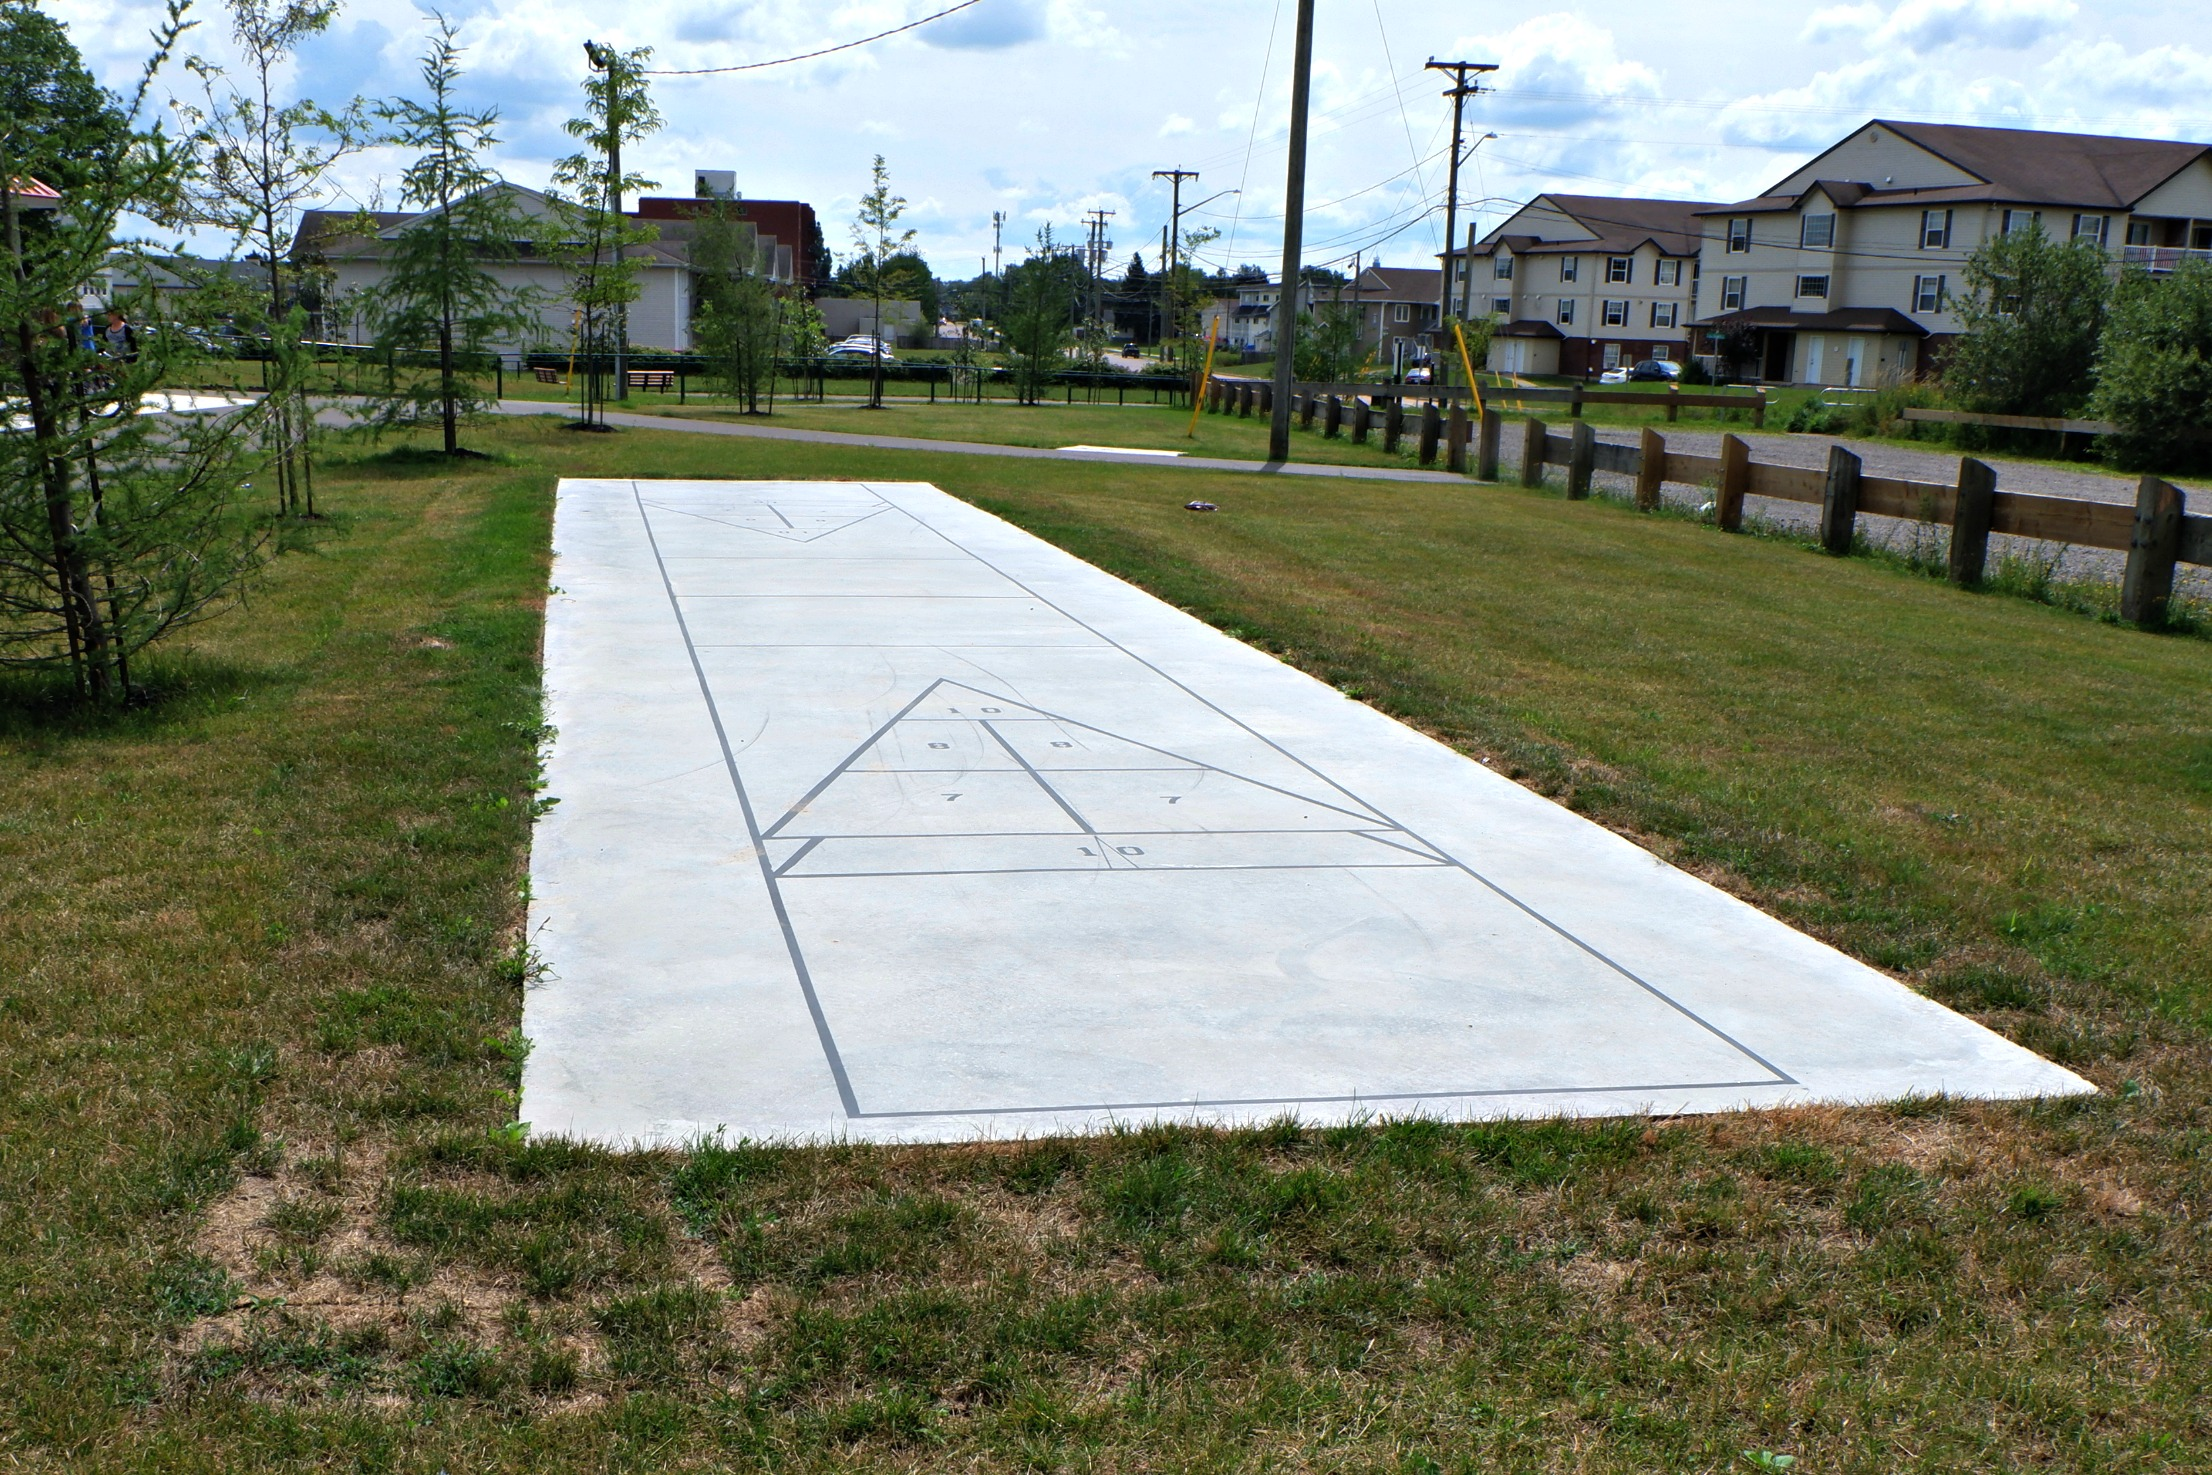 fairview knoll playground park moncton splash pad pickle planet near highway shuffle board